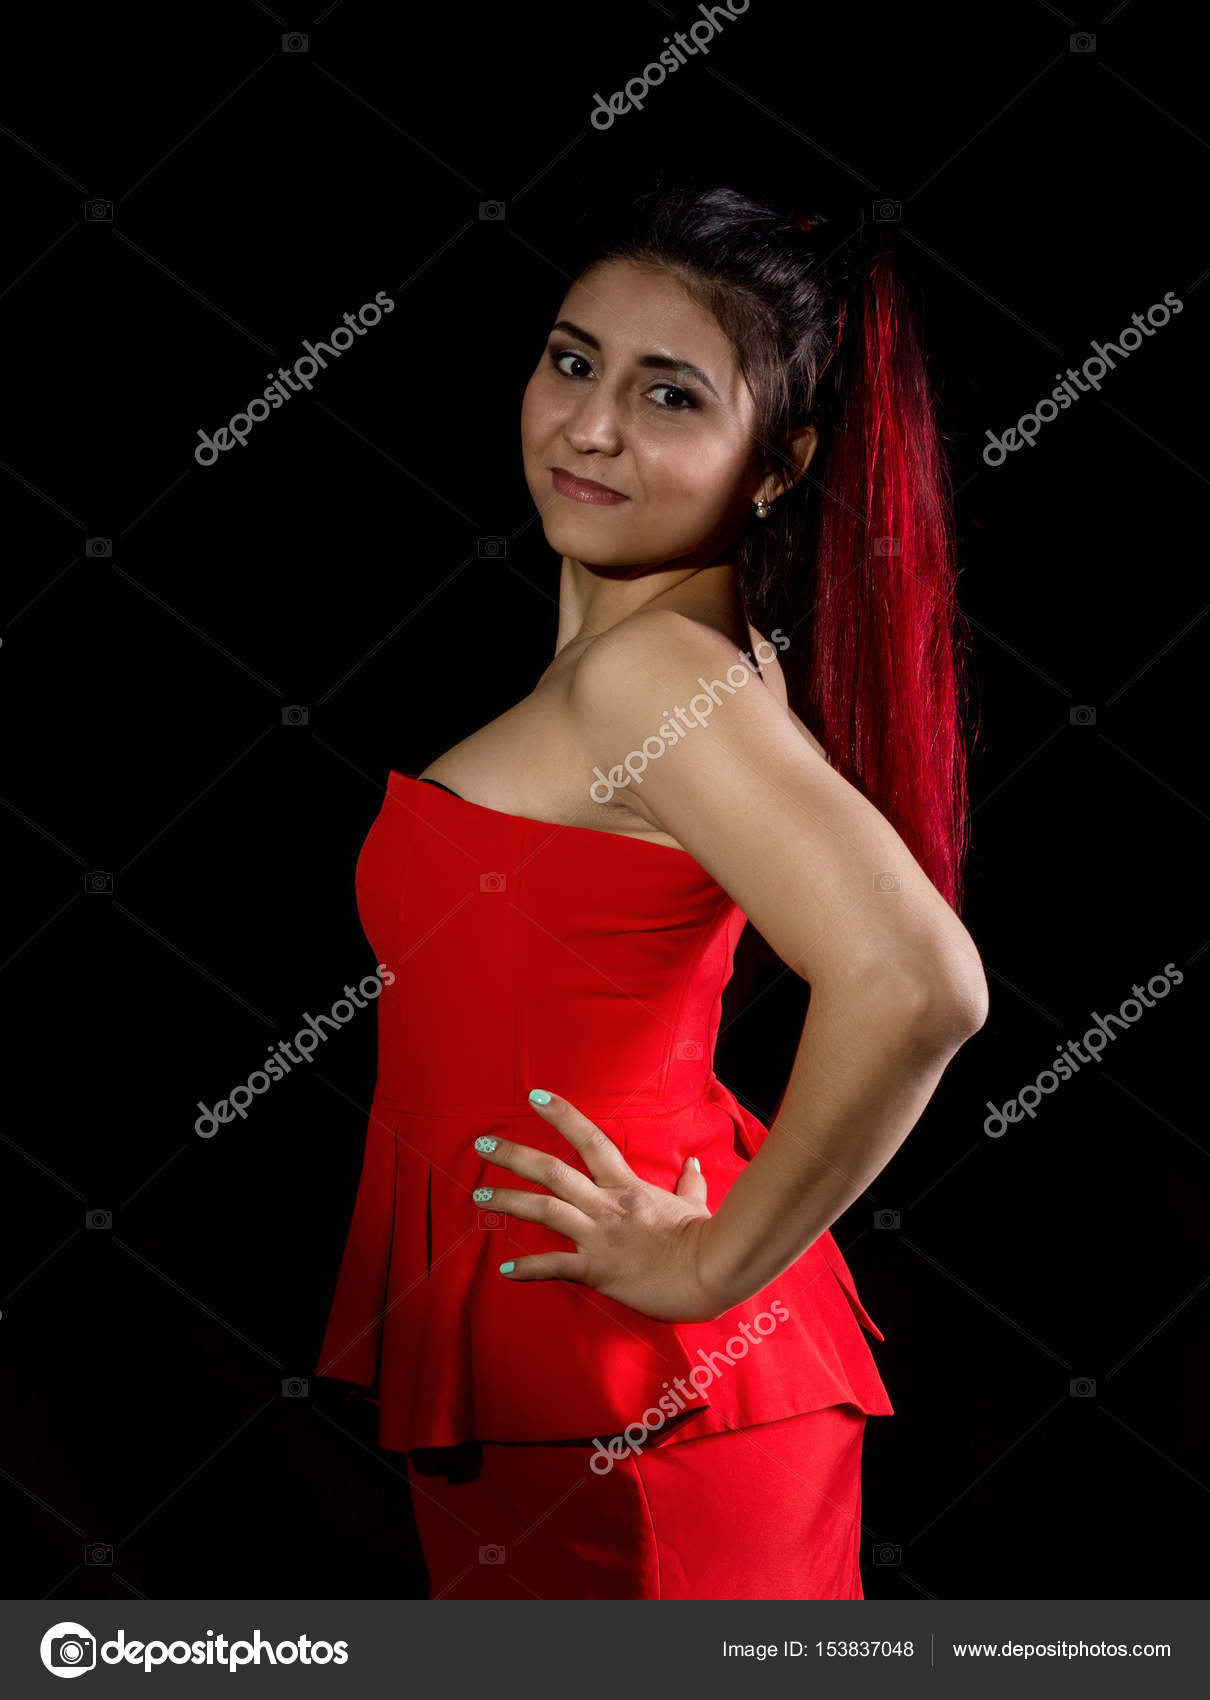 Pretty Young Sexy Asian Model With Red Hair In Amazing Red Dress On